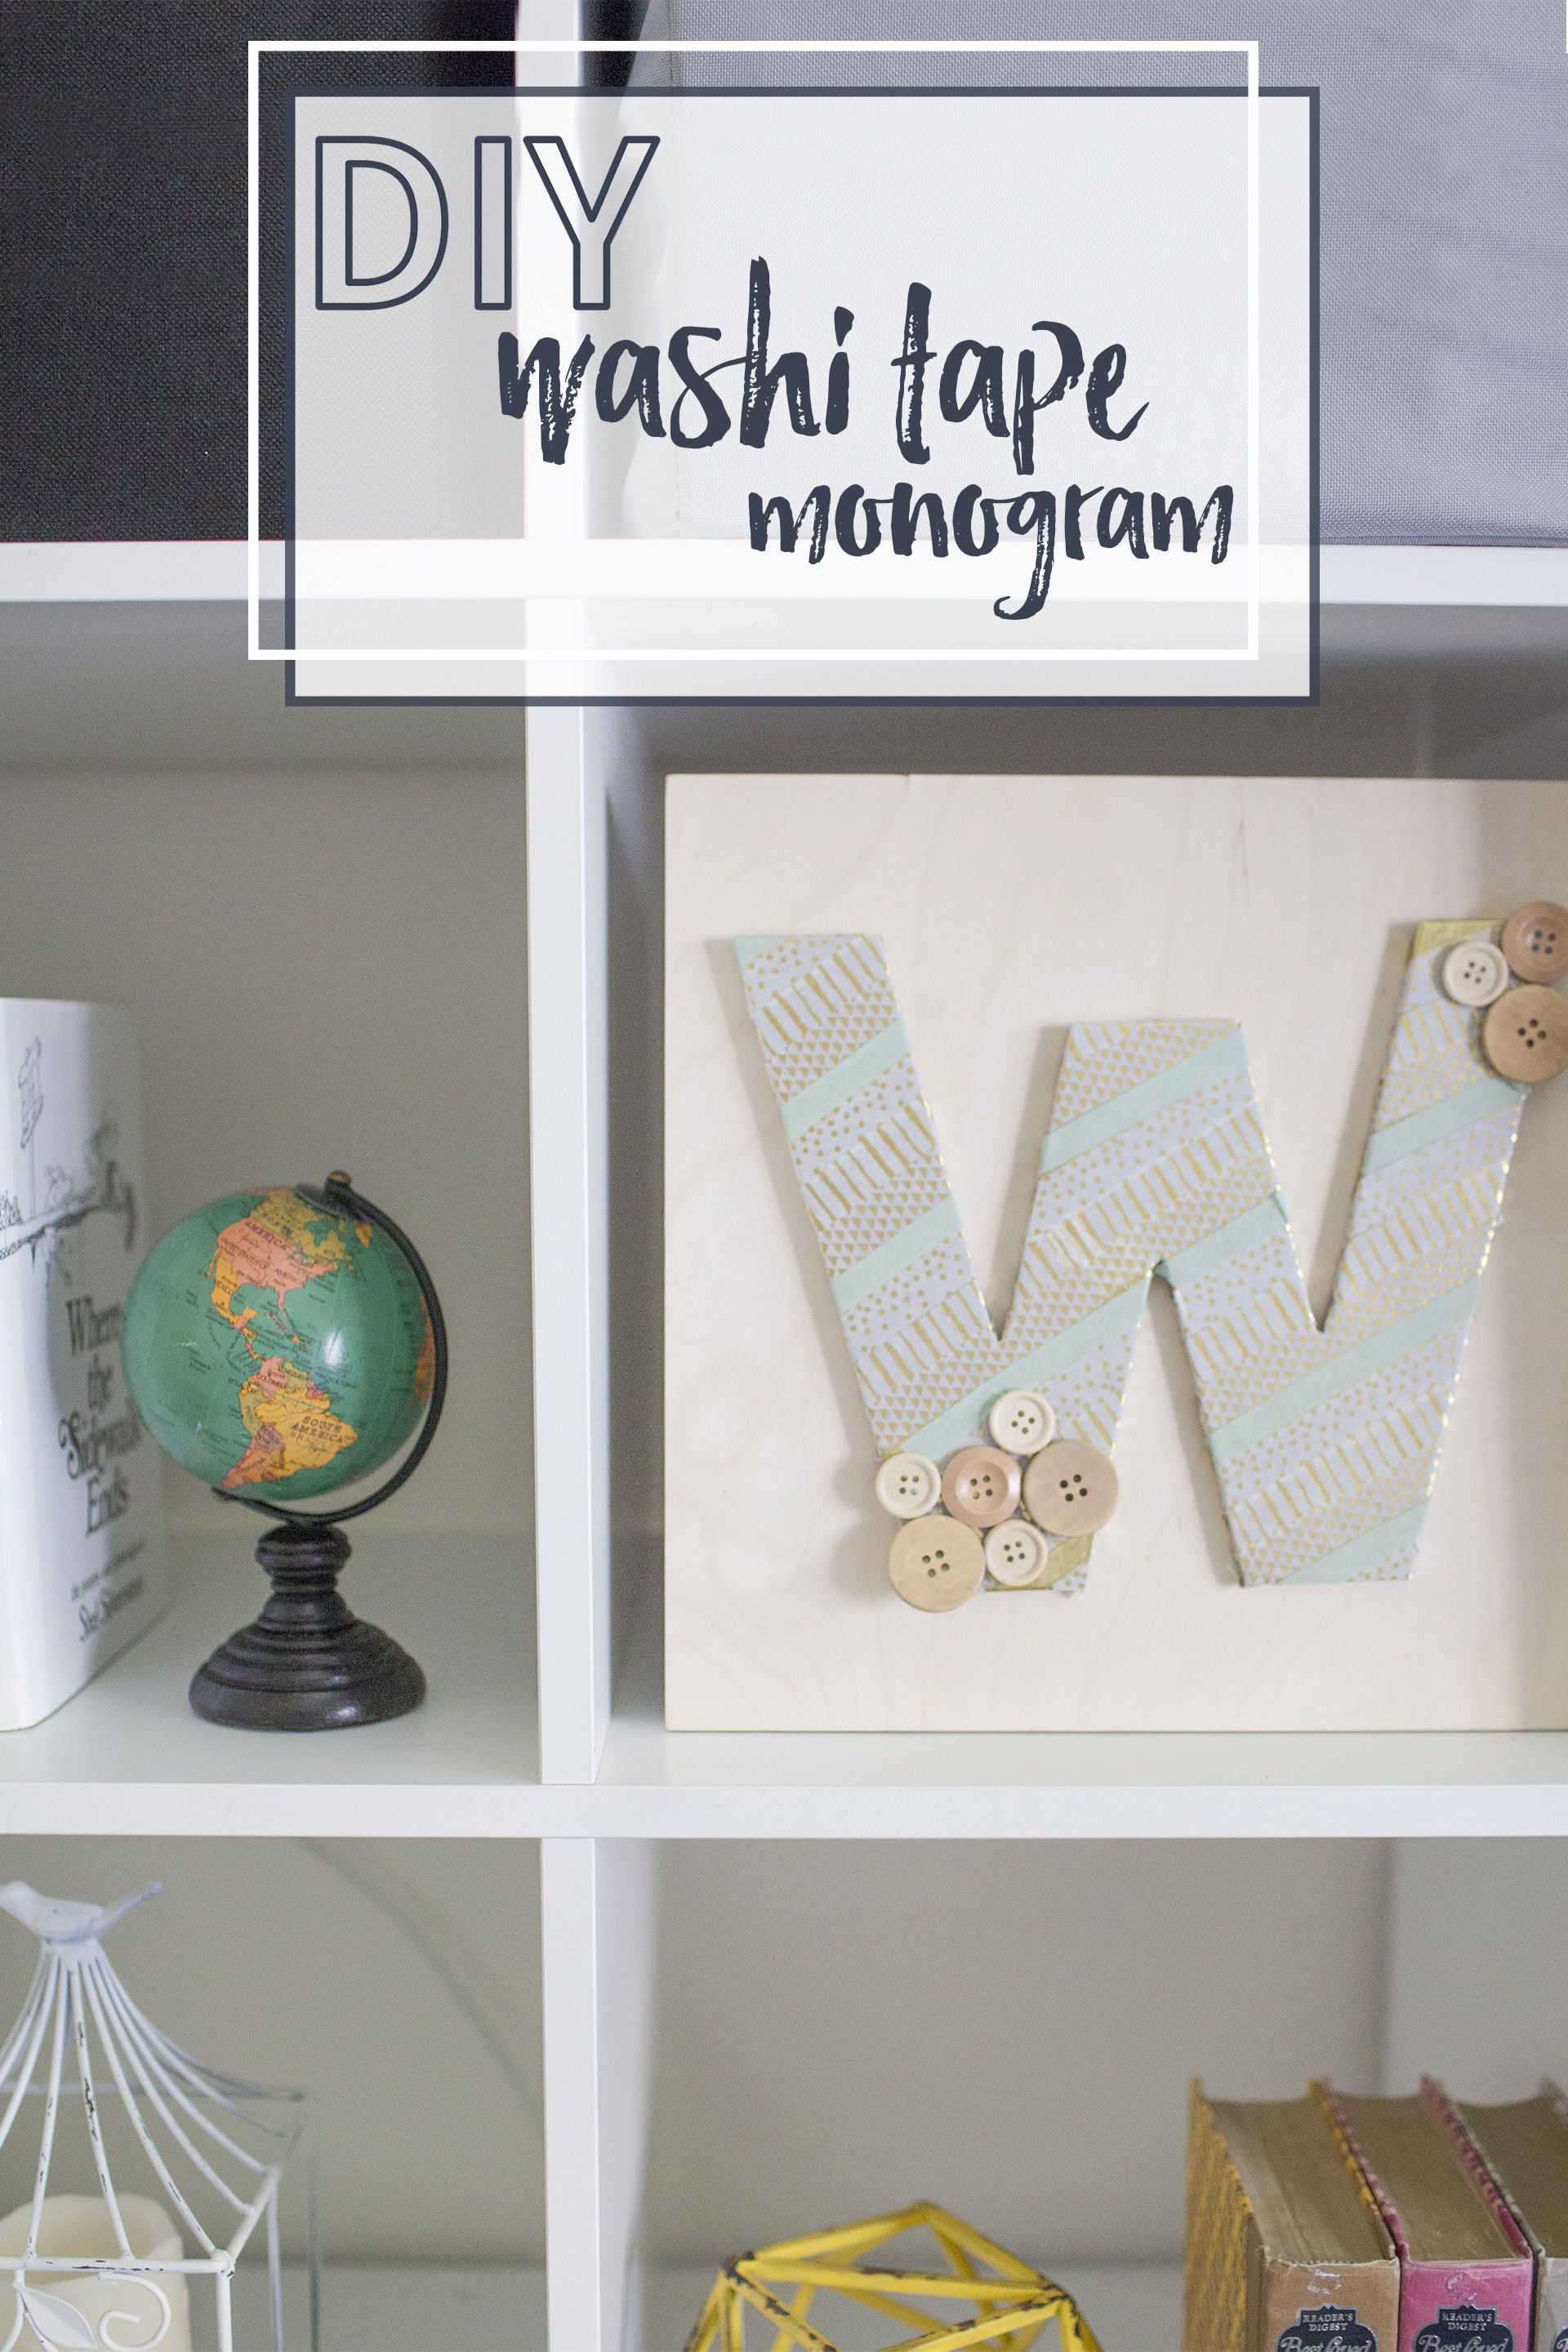 How To Make a Washi Tape Monogram in 4 Steps | Washi tape, Washi and ...